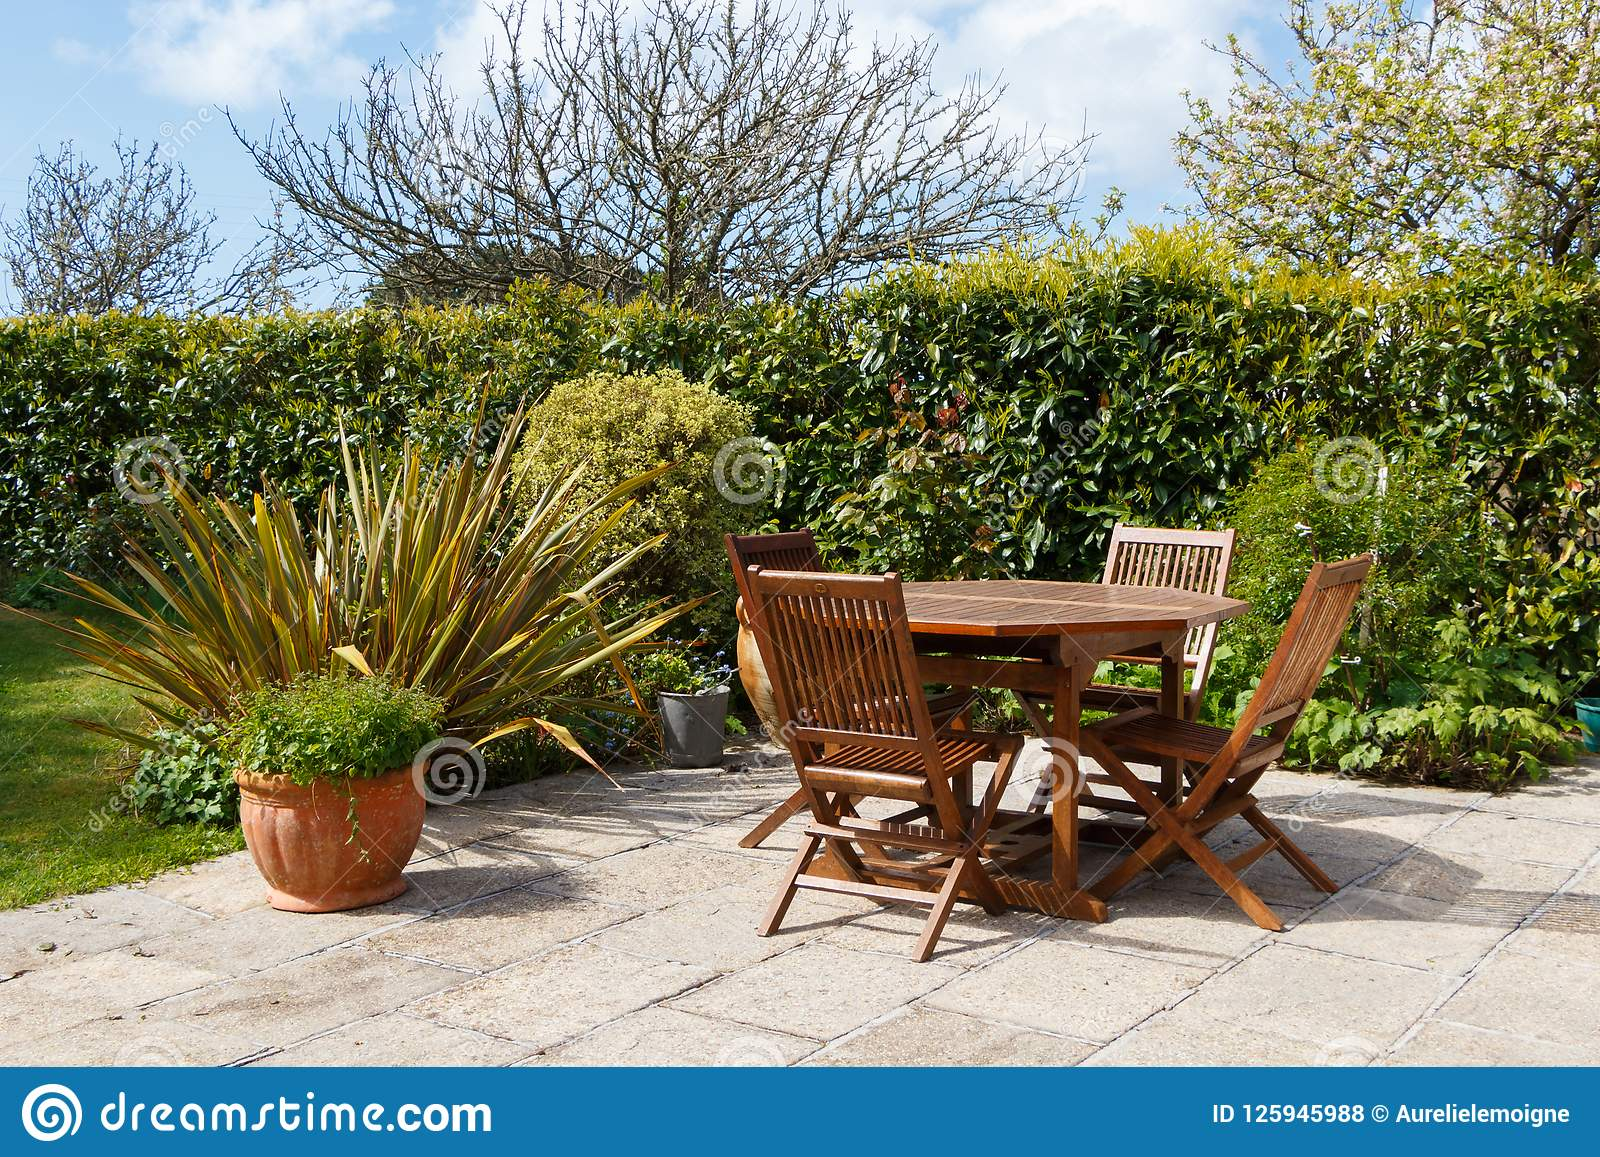 Terrace And Garden Furniture Stock Photo - Image of tree, table ...